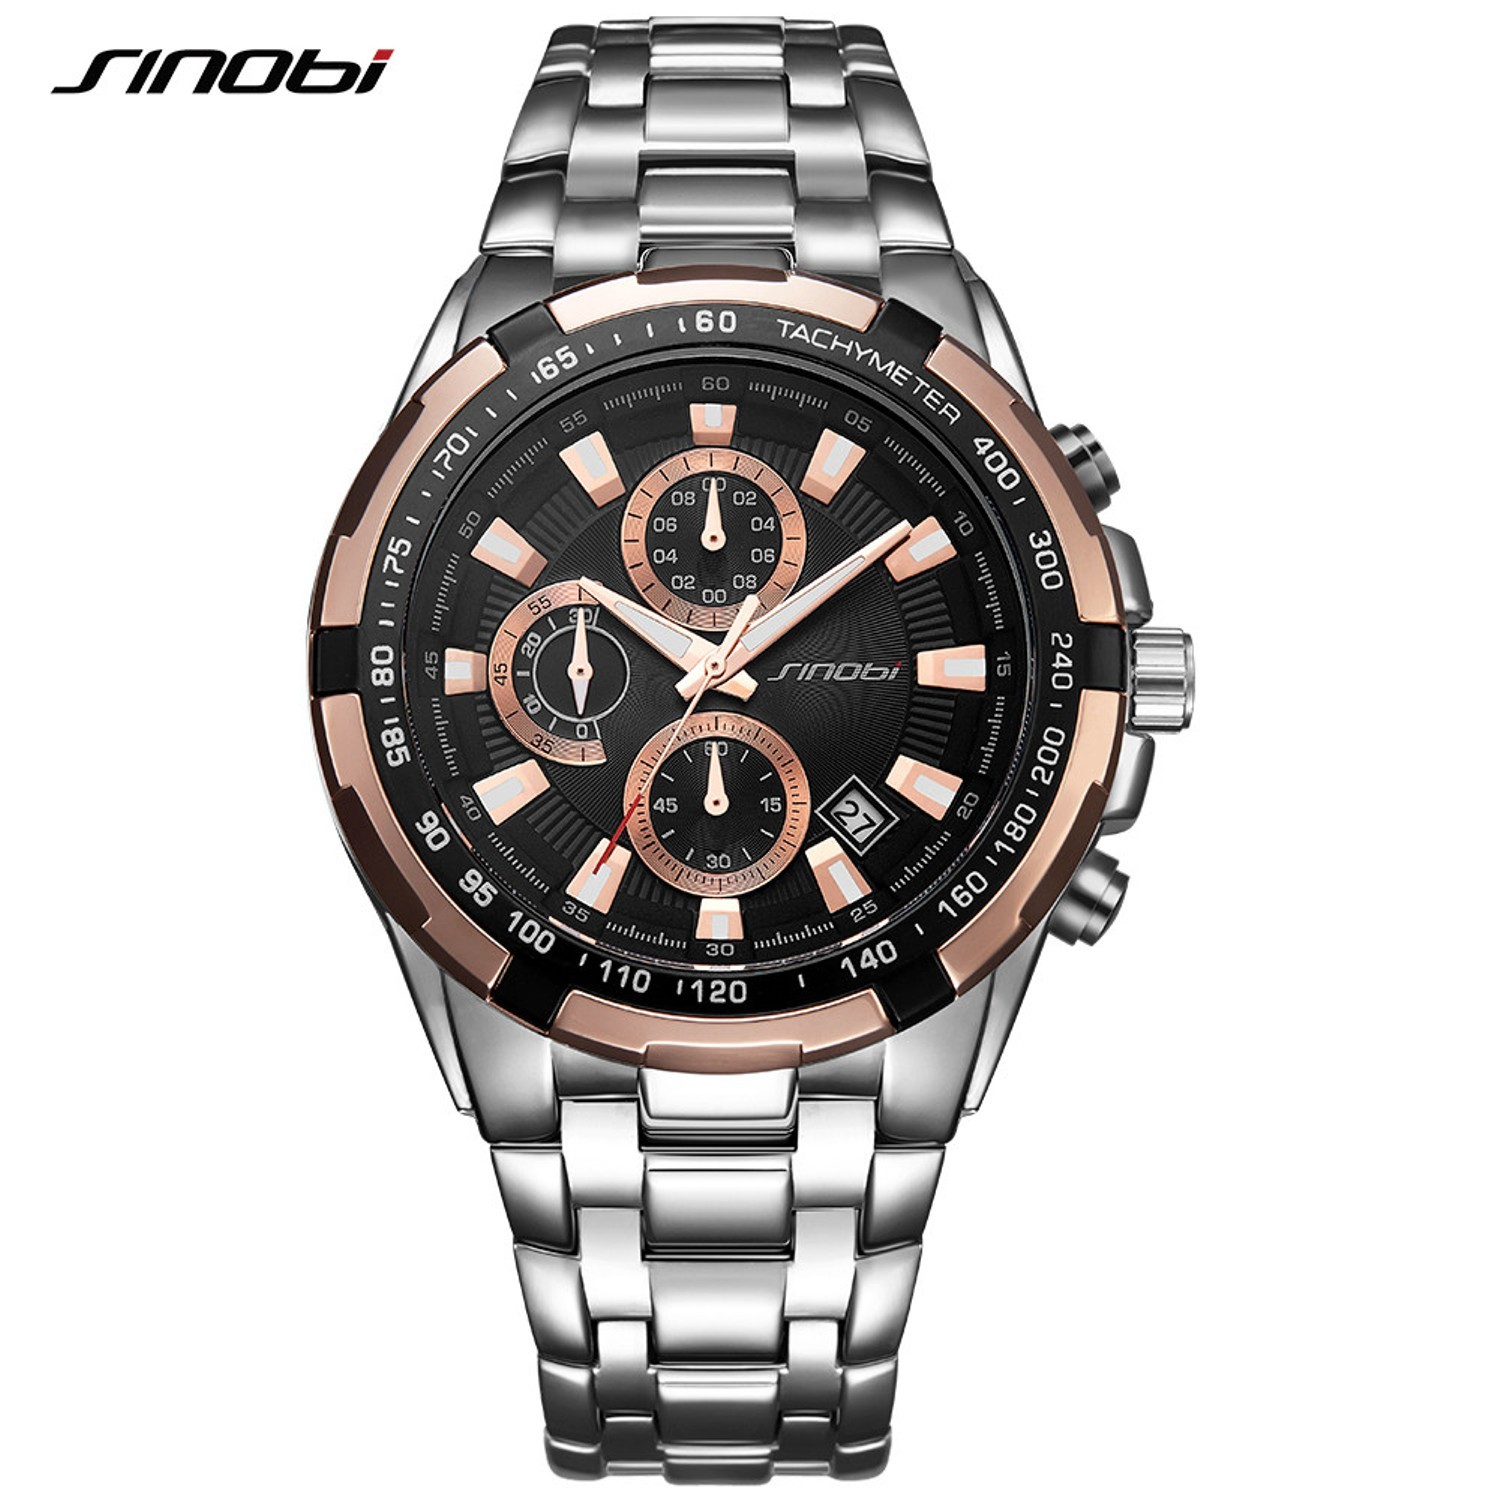 Original-Brand-Sinobi-9720-Men-s-Business-Chronograph-Watches-Waterproof-Stainless-Steel-Band-Sports-Watch-Relogio_1500x1500_STRETCH_blackgold.jpg